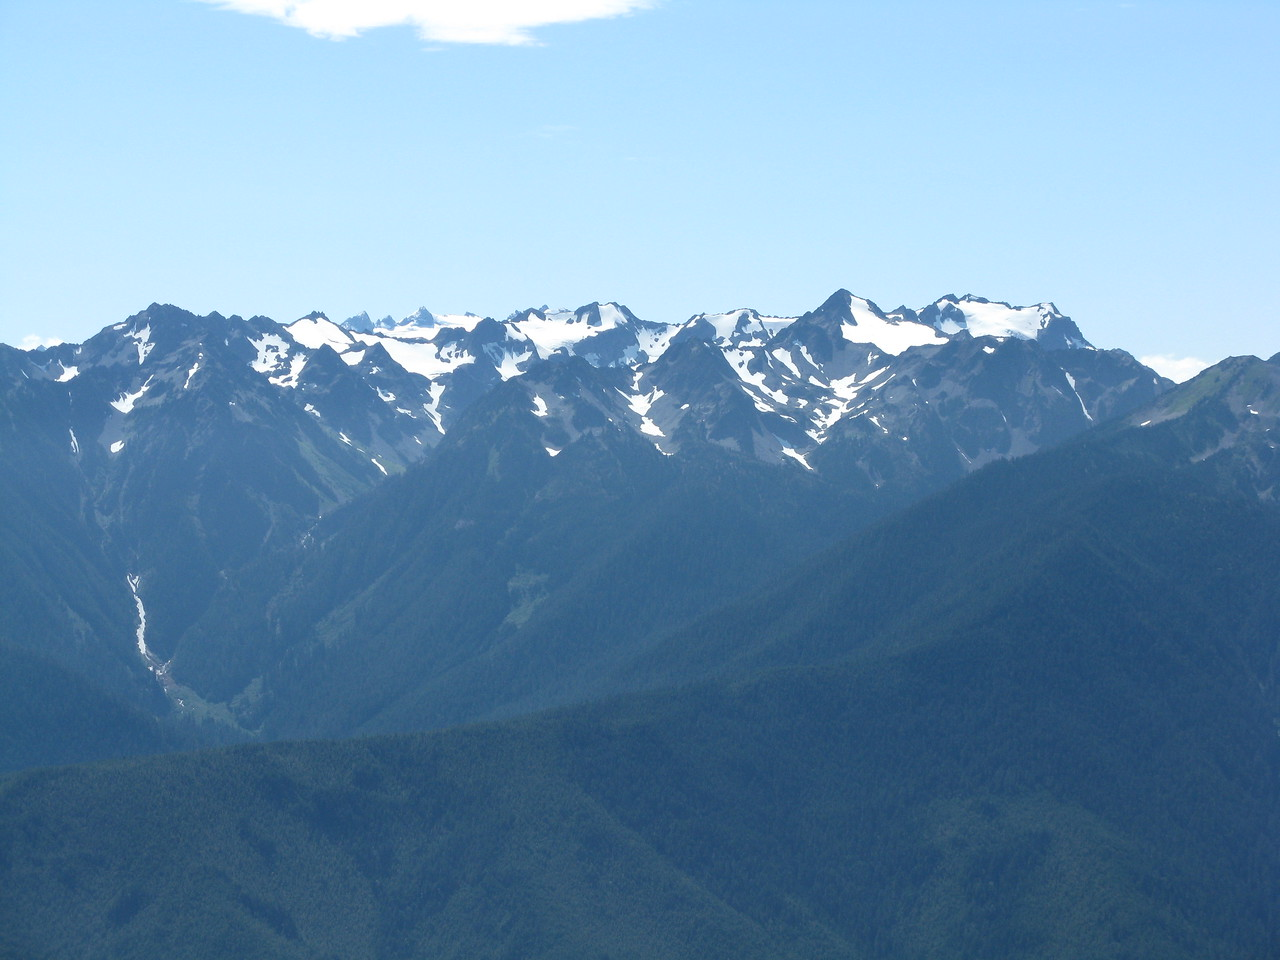 A telephoto view of the Olympic Mountains to the south.